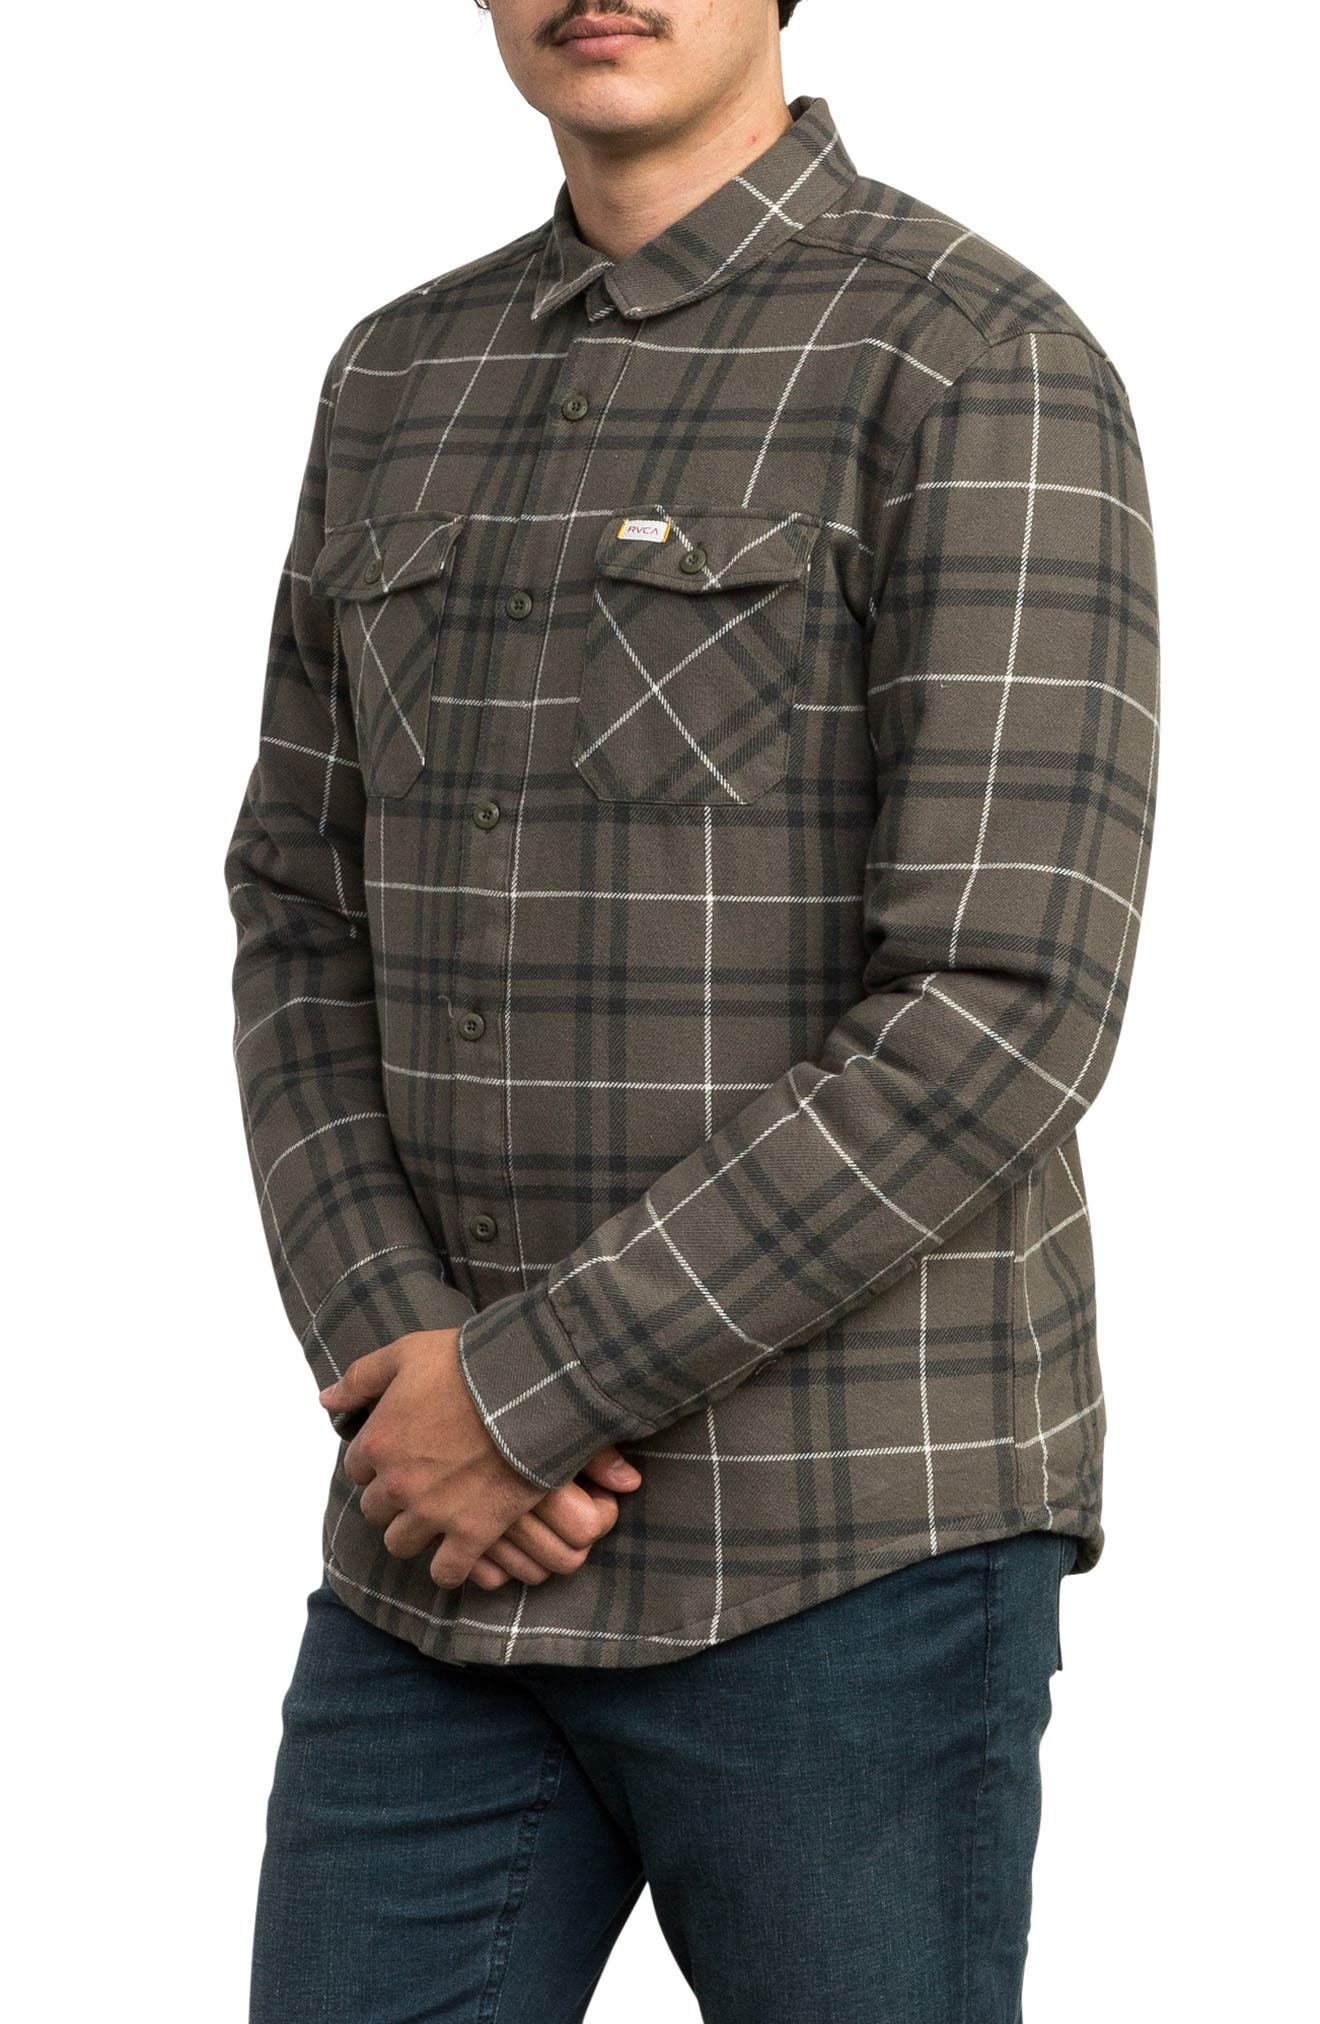 Andrew Reynolds Lined Plaid Shirt,                             Alternate thumbnail 3, color,                             OLIVE